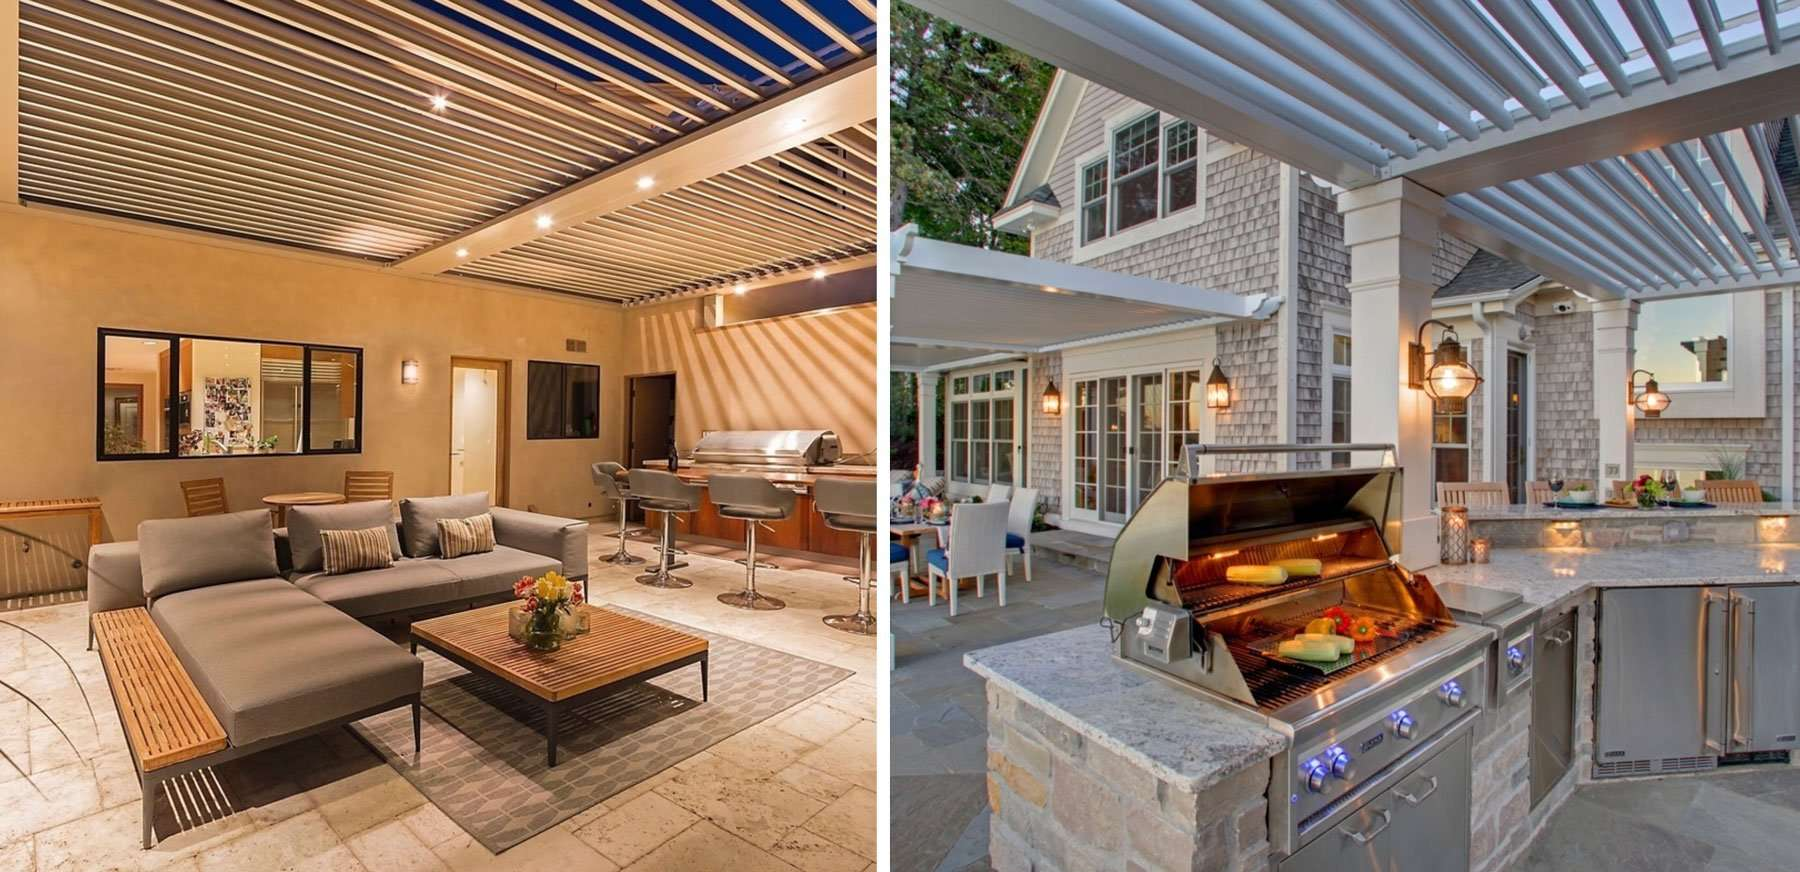 Astounding Unique Outdoor Rooms Offering Sun Shade Shelter Harrell Download Free Architecture Designs Scobabritishbridgeorg